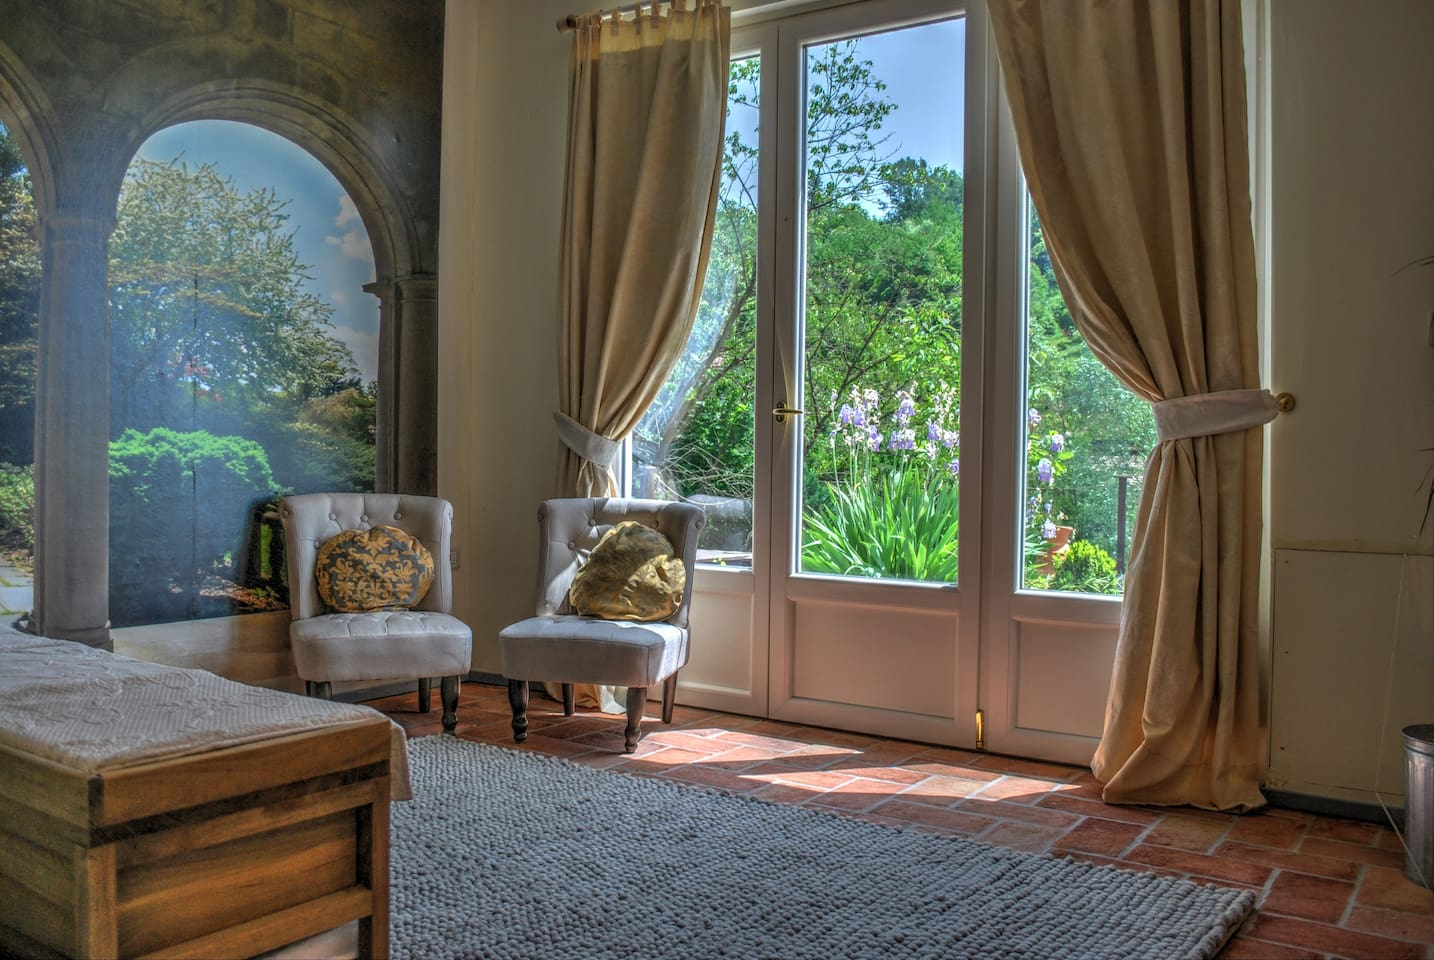 A light airy and cool room, decorated in traditional style; step out the door to enjoy the deck and garden.